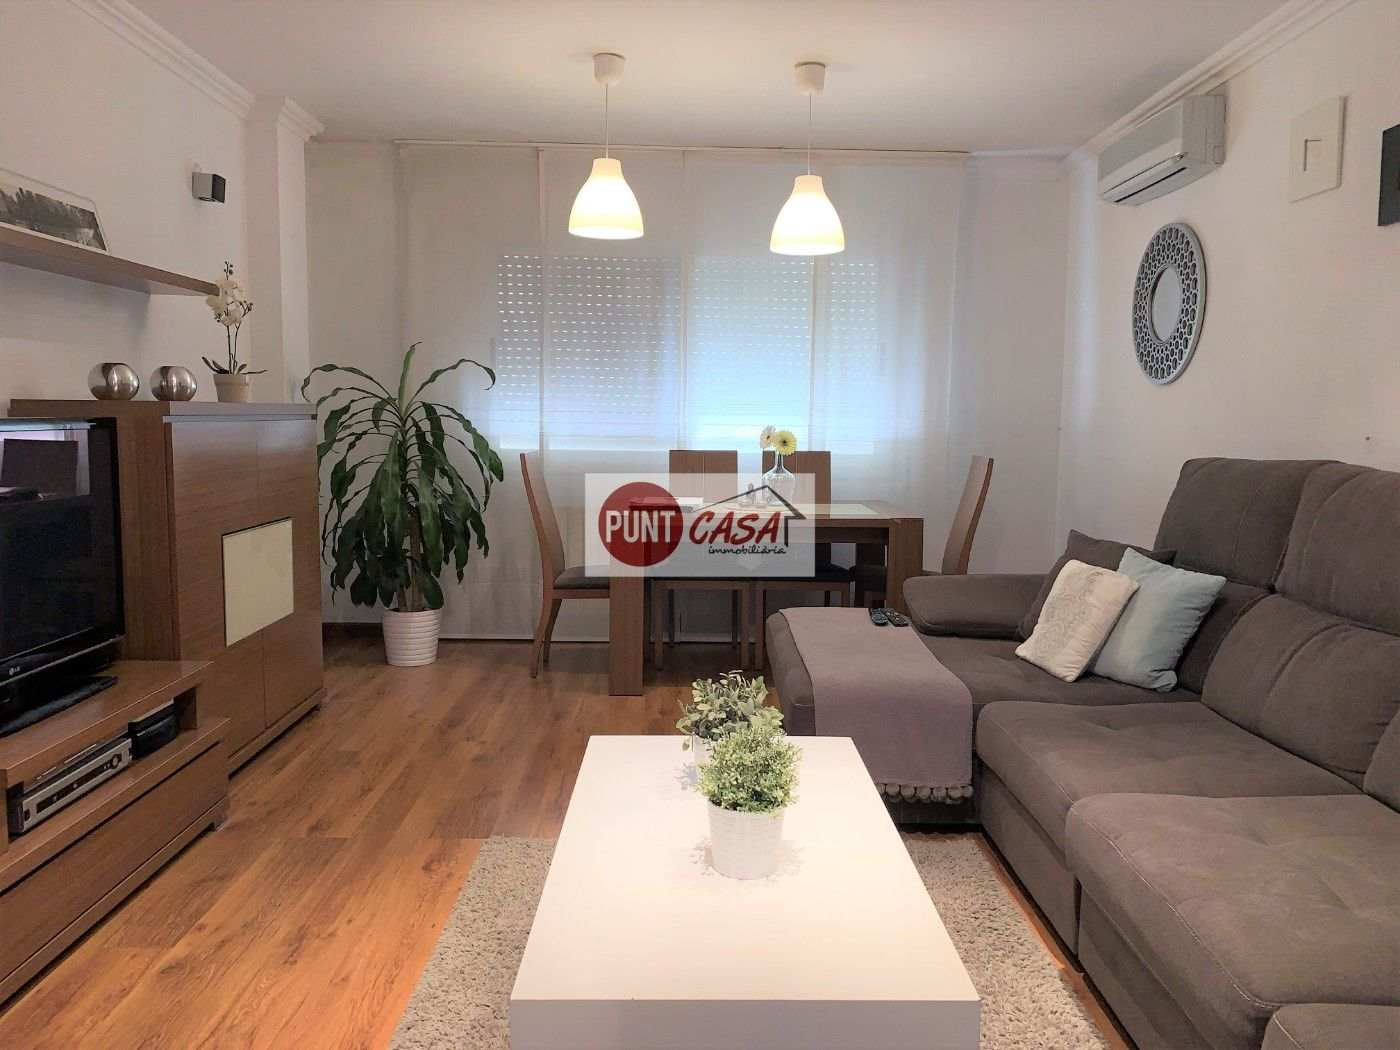 Appartement  Magraners. Oportunidad en magraners